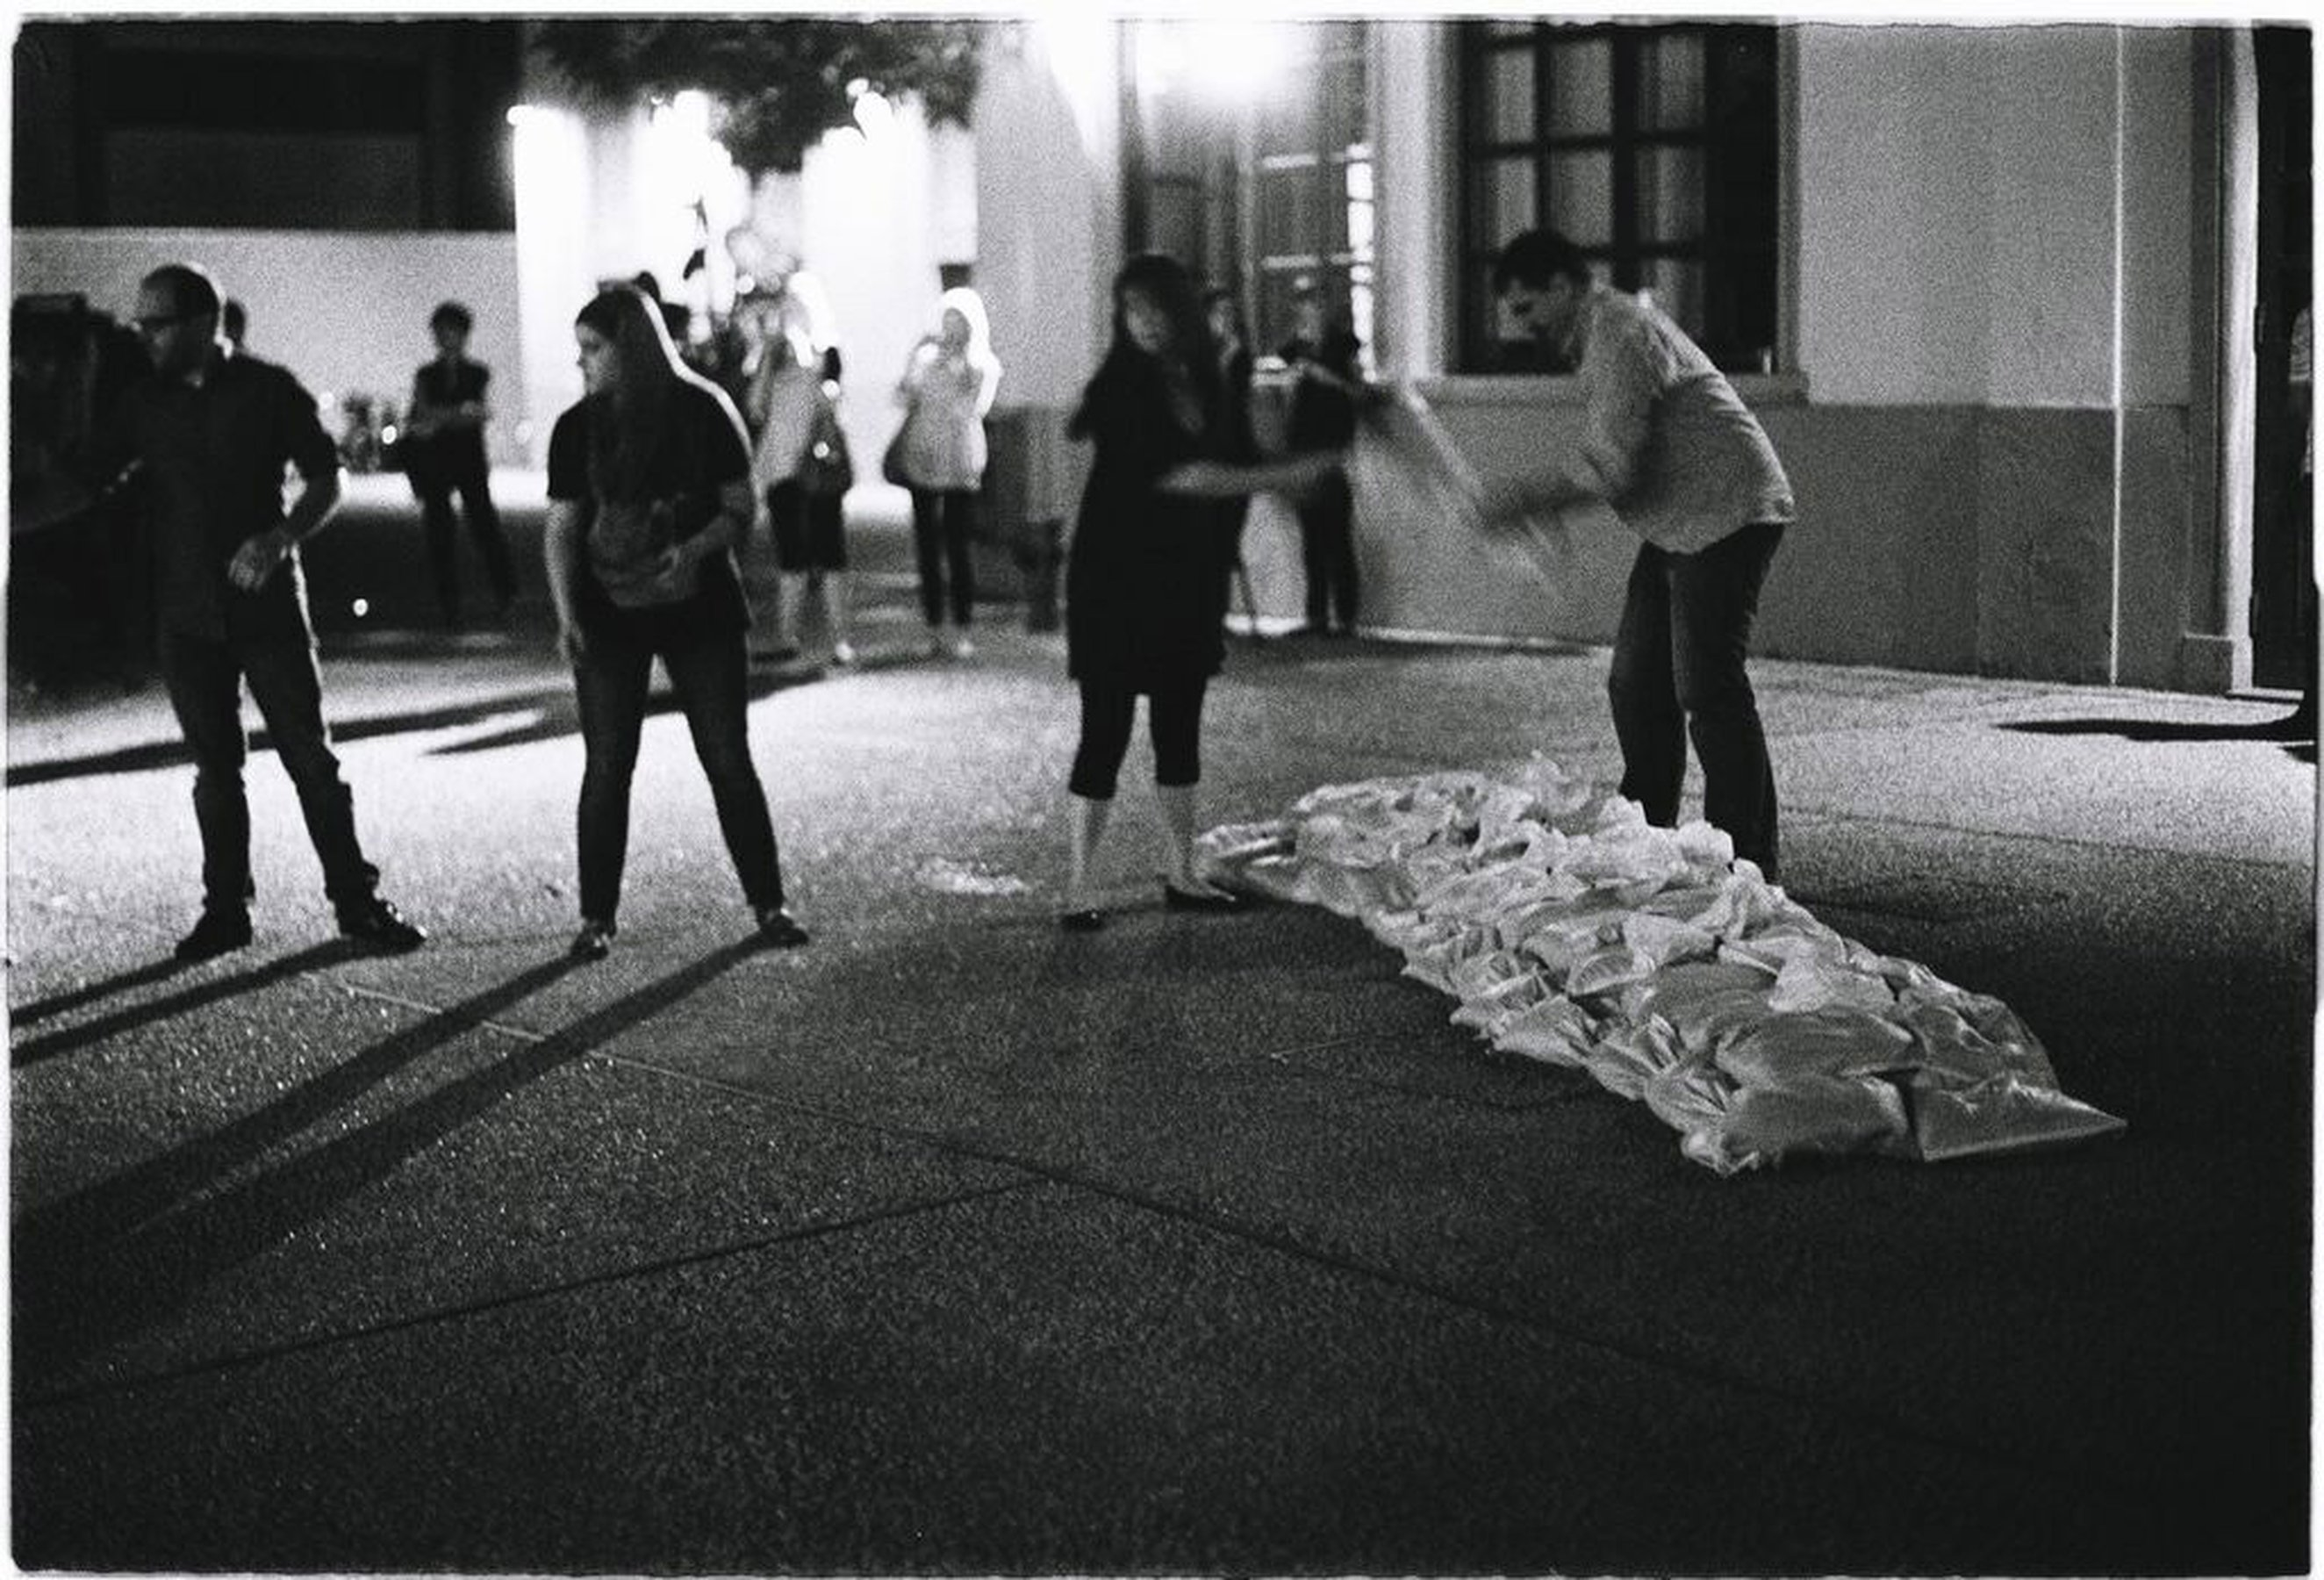 Action for a sandbag brigade - writing the borders of crisis, 2011 performance